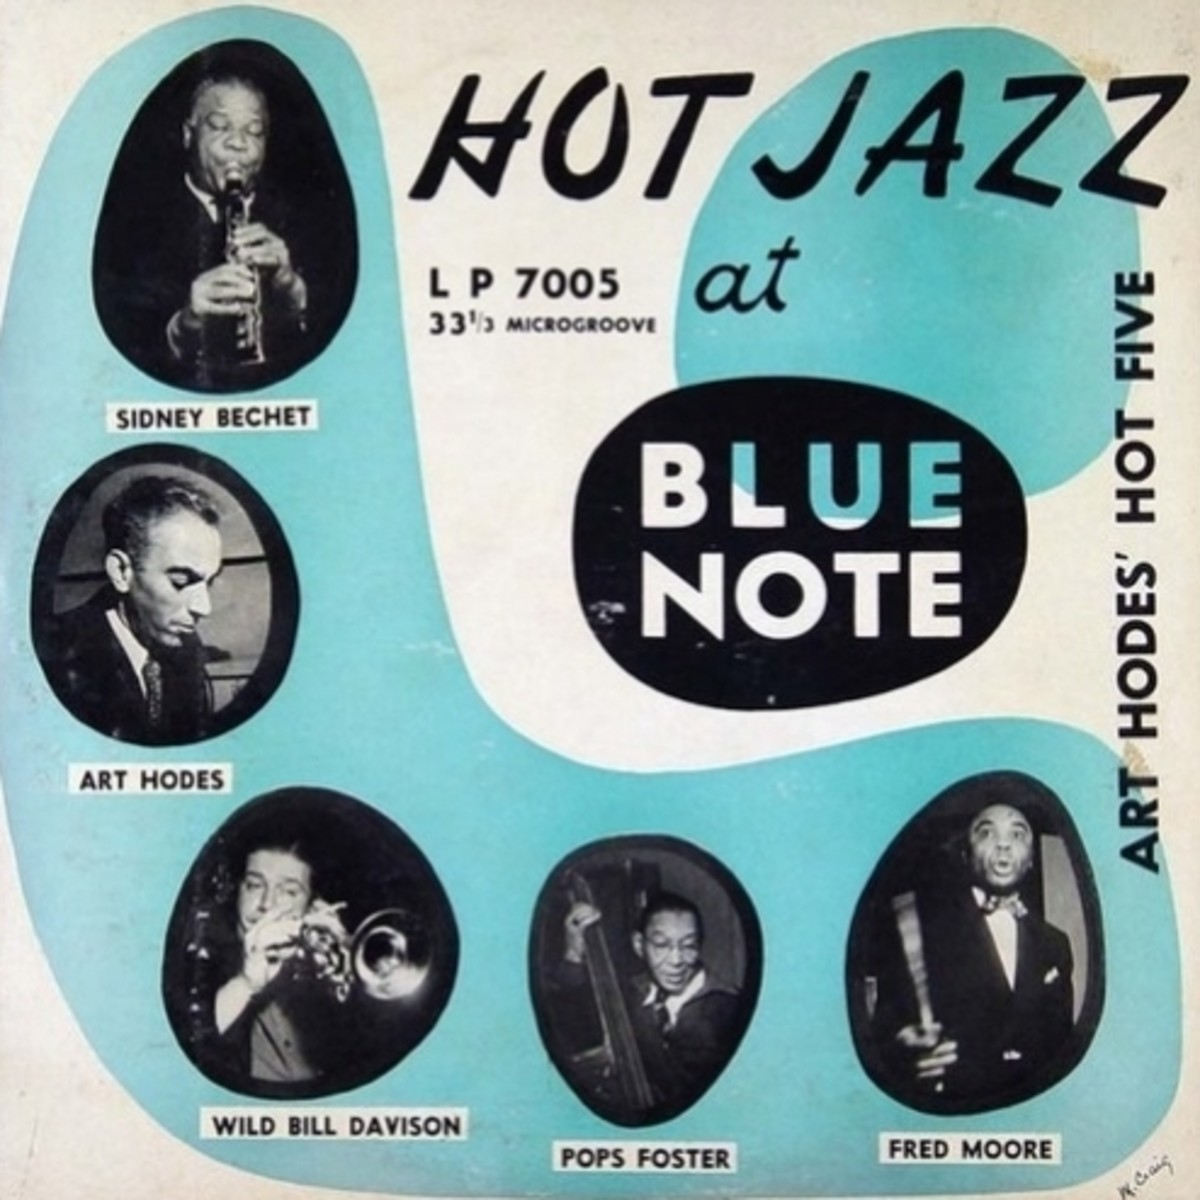 "Art Hodes Hot Five ""Hot Jazz at Blue Note"" - Blue Note Records BLP 7005 10"" LP Vinyl Record (1950) Album Cover Design by Paul Bacon Photos by Francis Wolff"